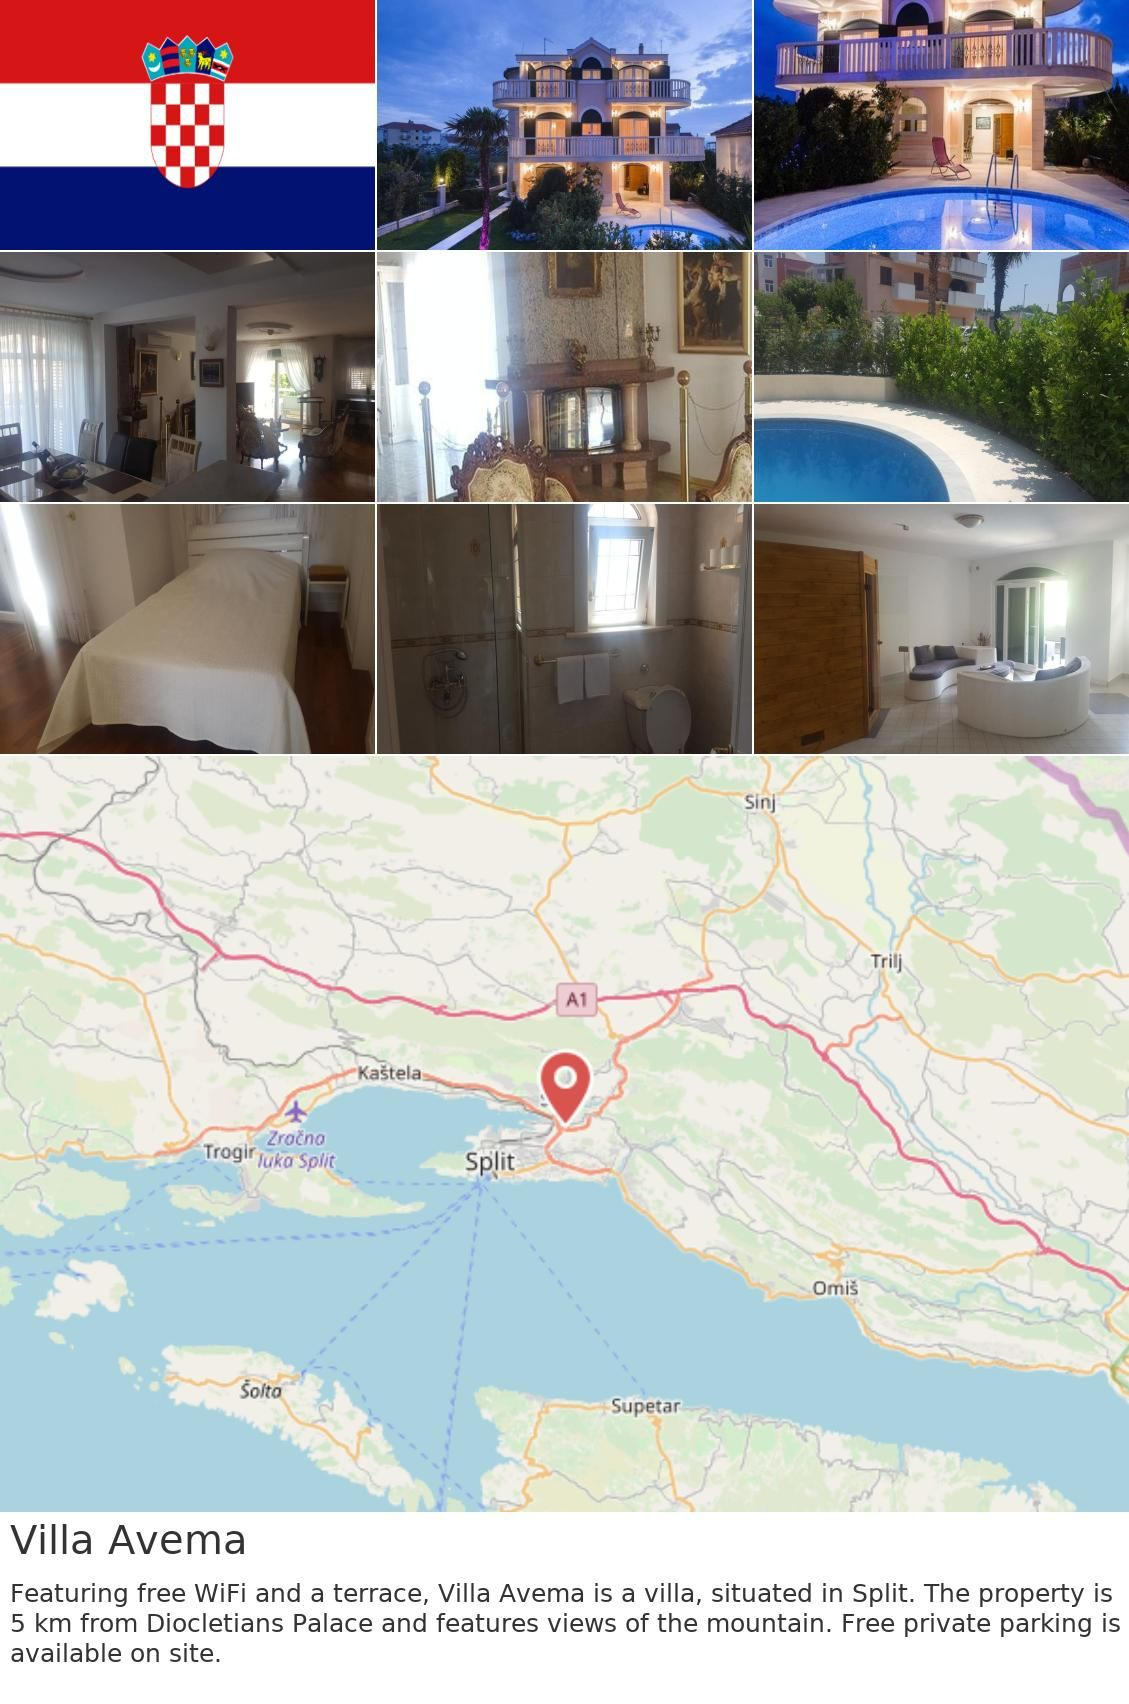 Europe Croatia Split Villa Avema Featuring Free Wifi And A Terrace Villa Avema Is A Villa Situated In Split The Property Is 5 Km From Diocletian S Palace